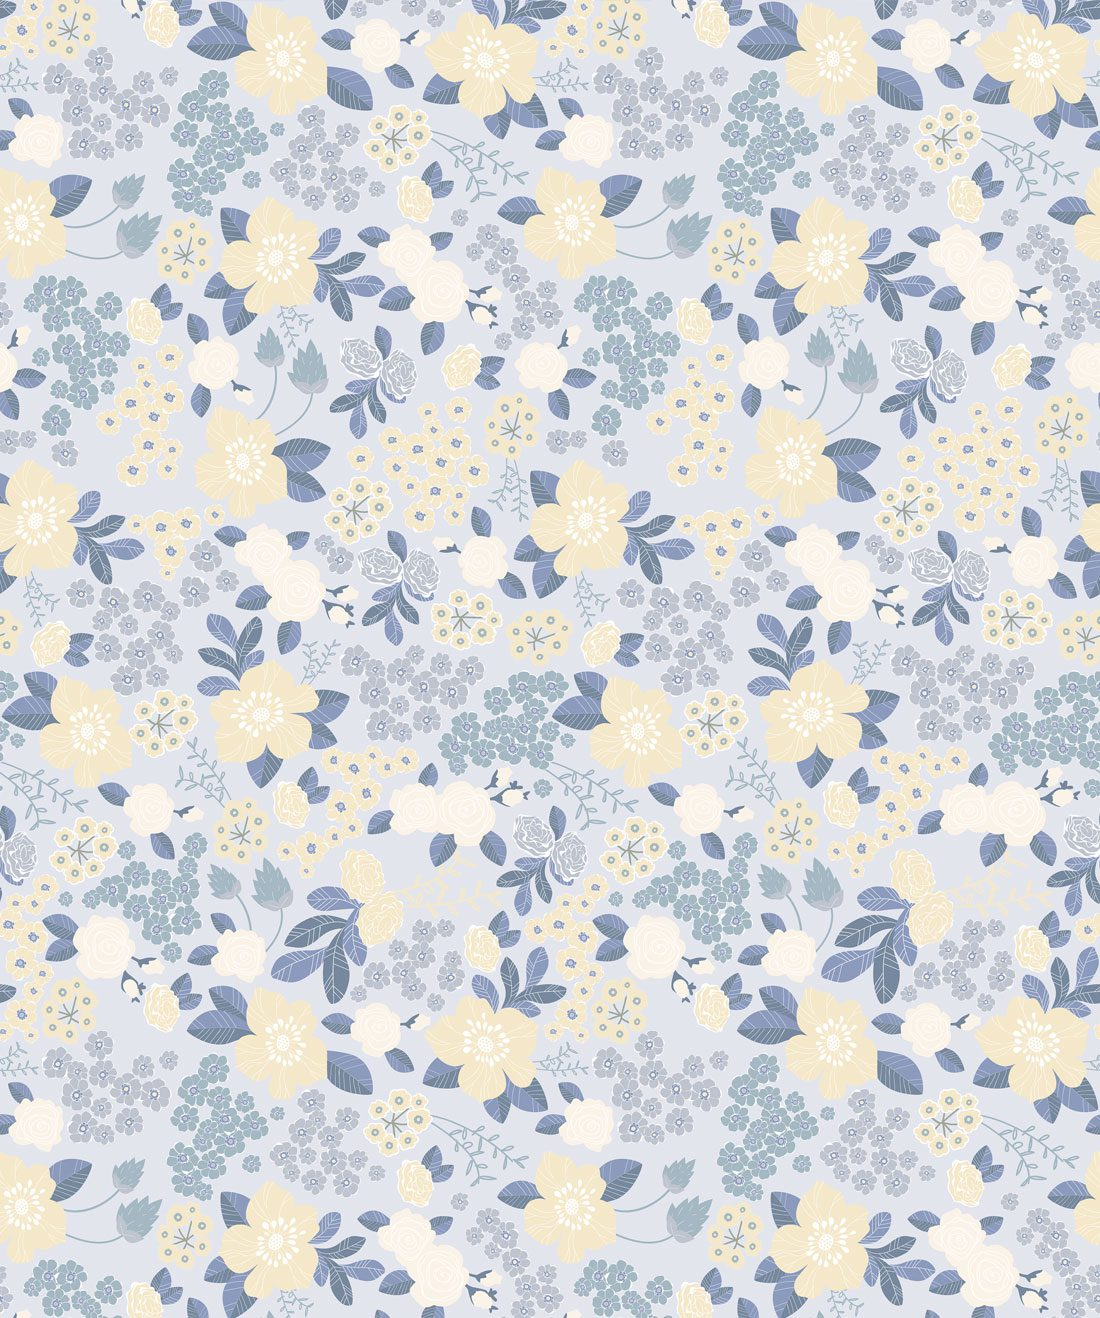 Flower Garden - Blue Wallpaper